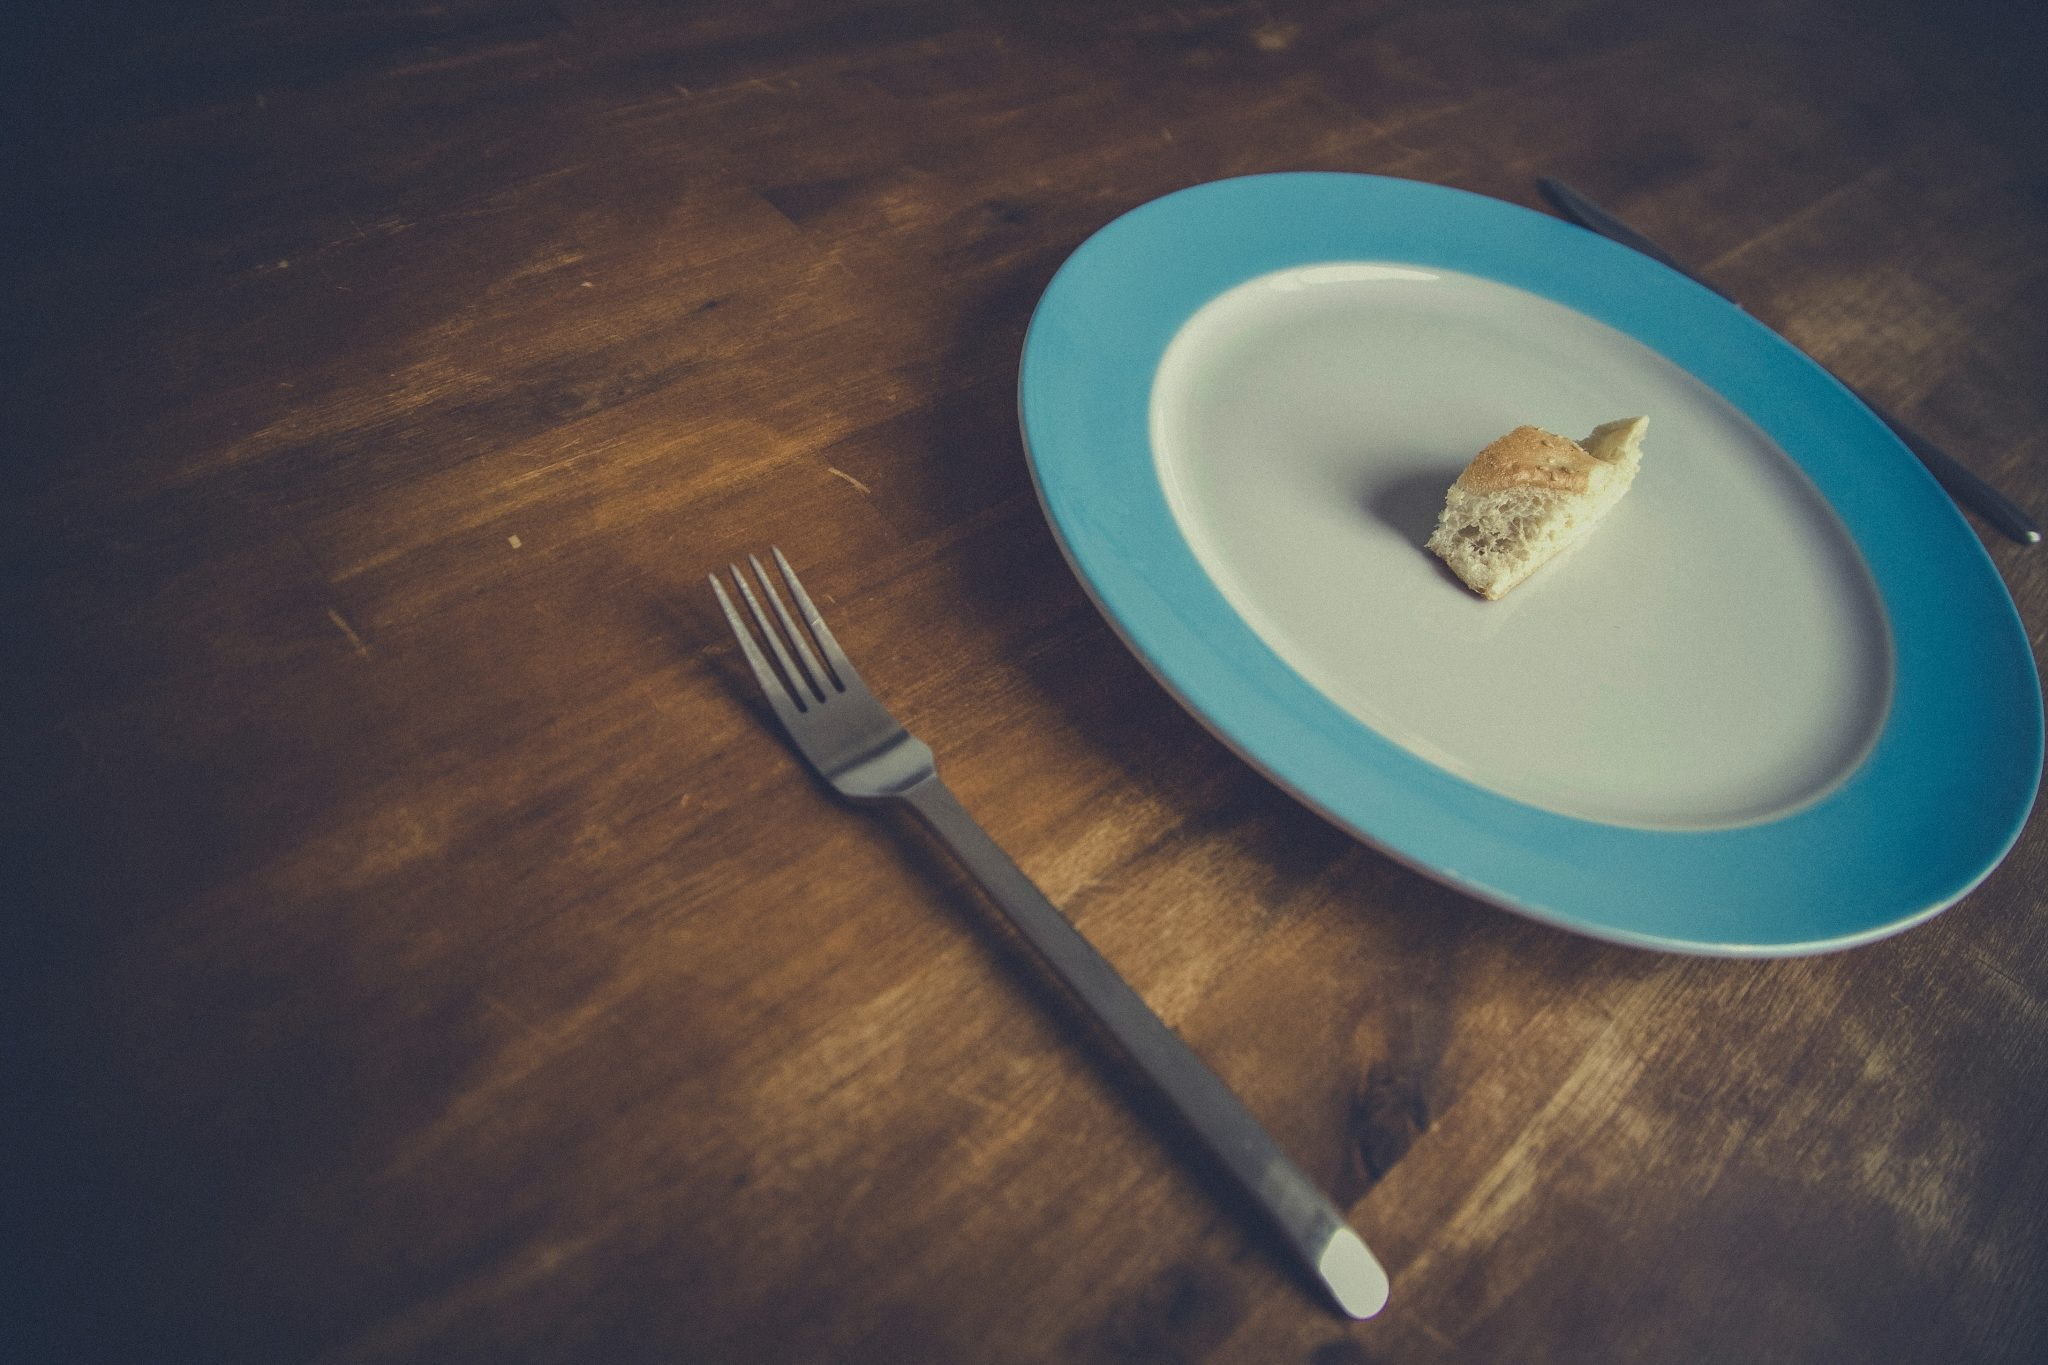 Alternate-day Fasting- Healthy or Not?